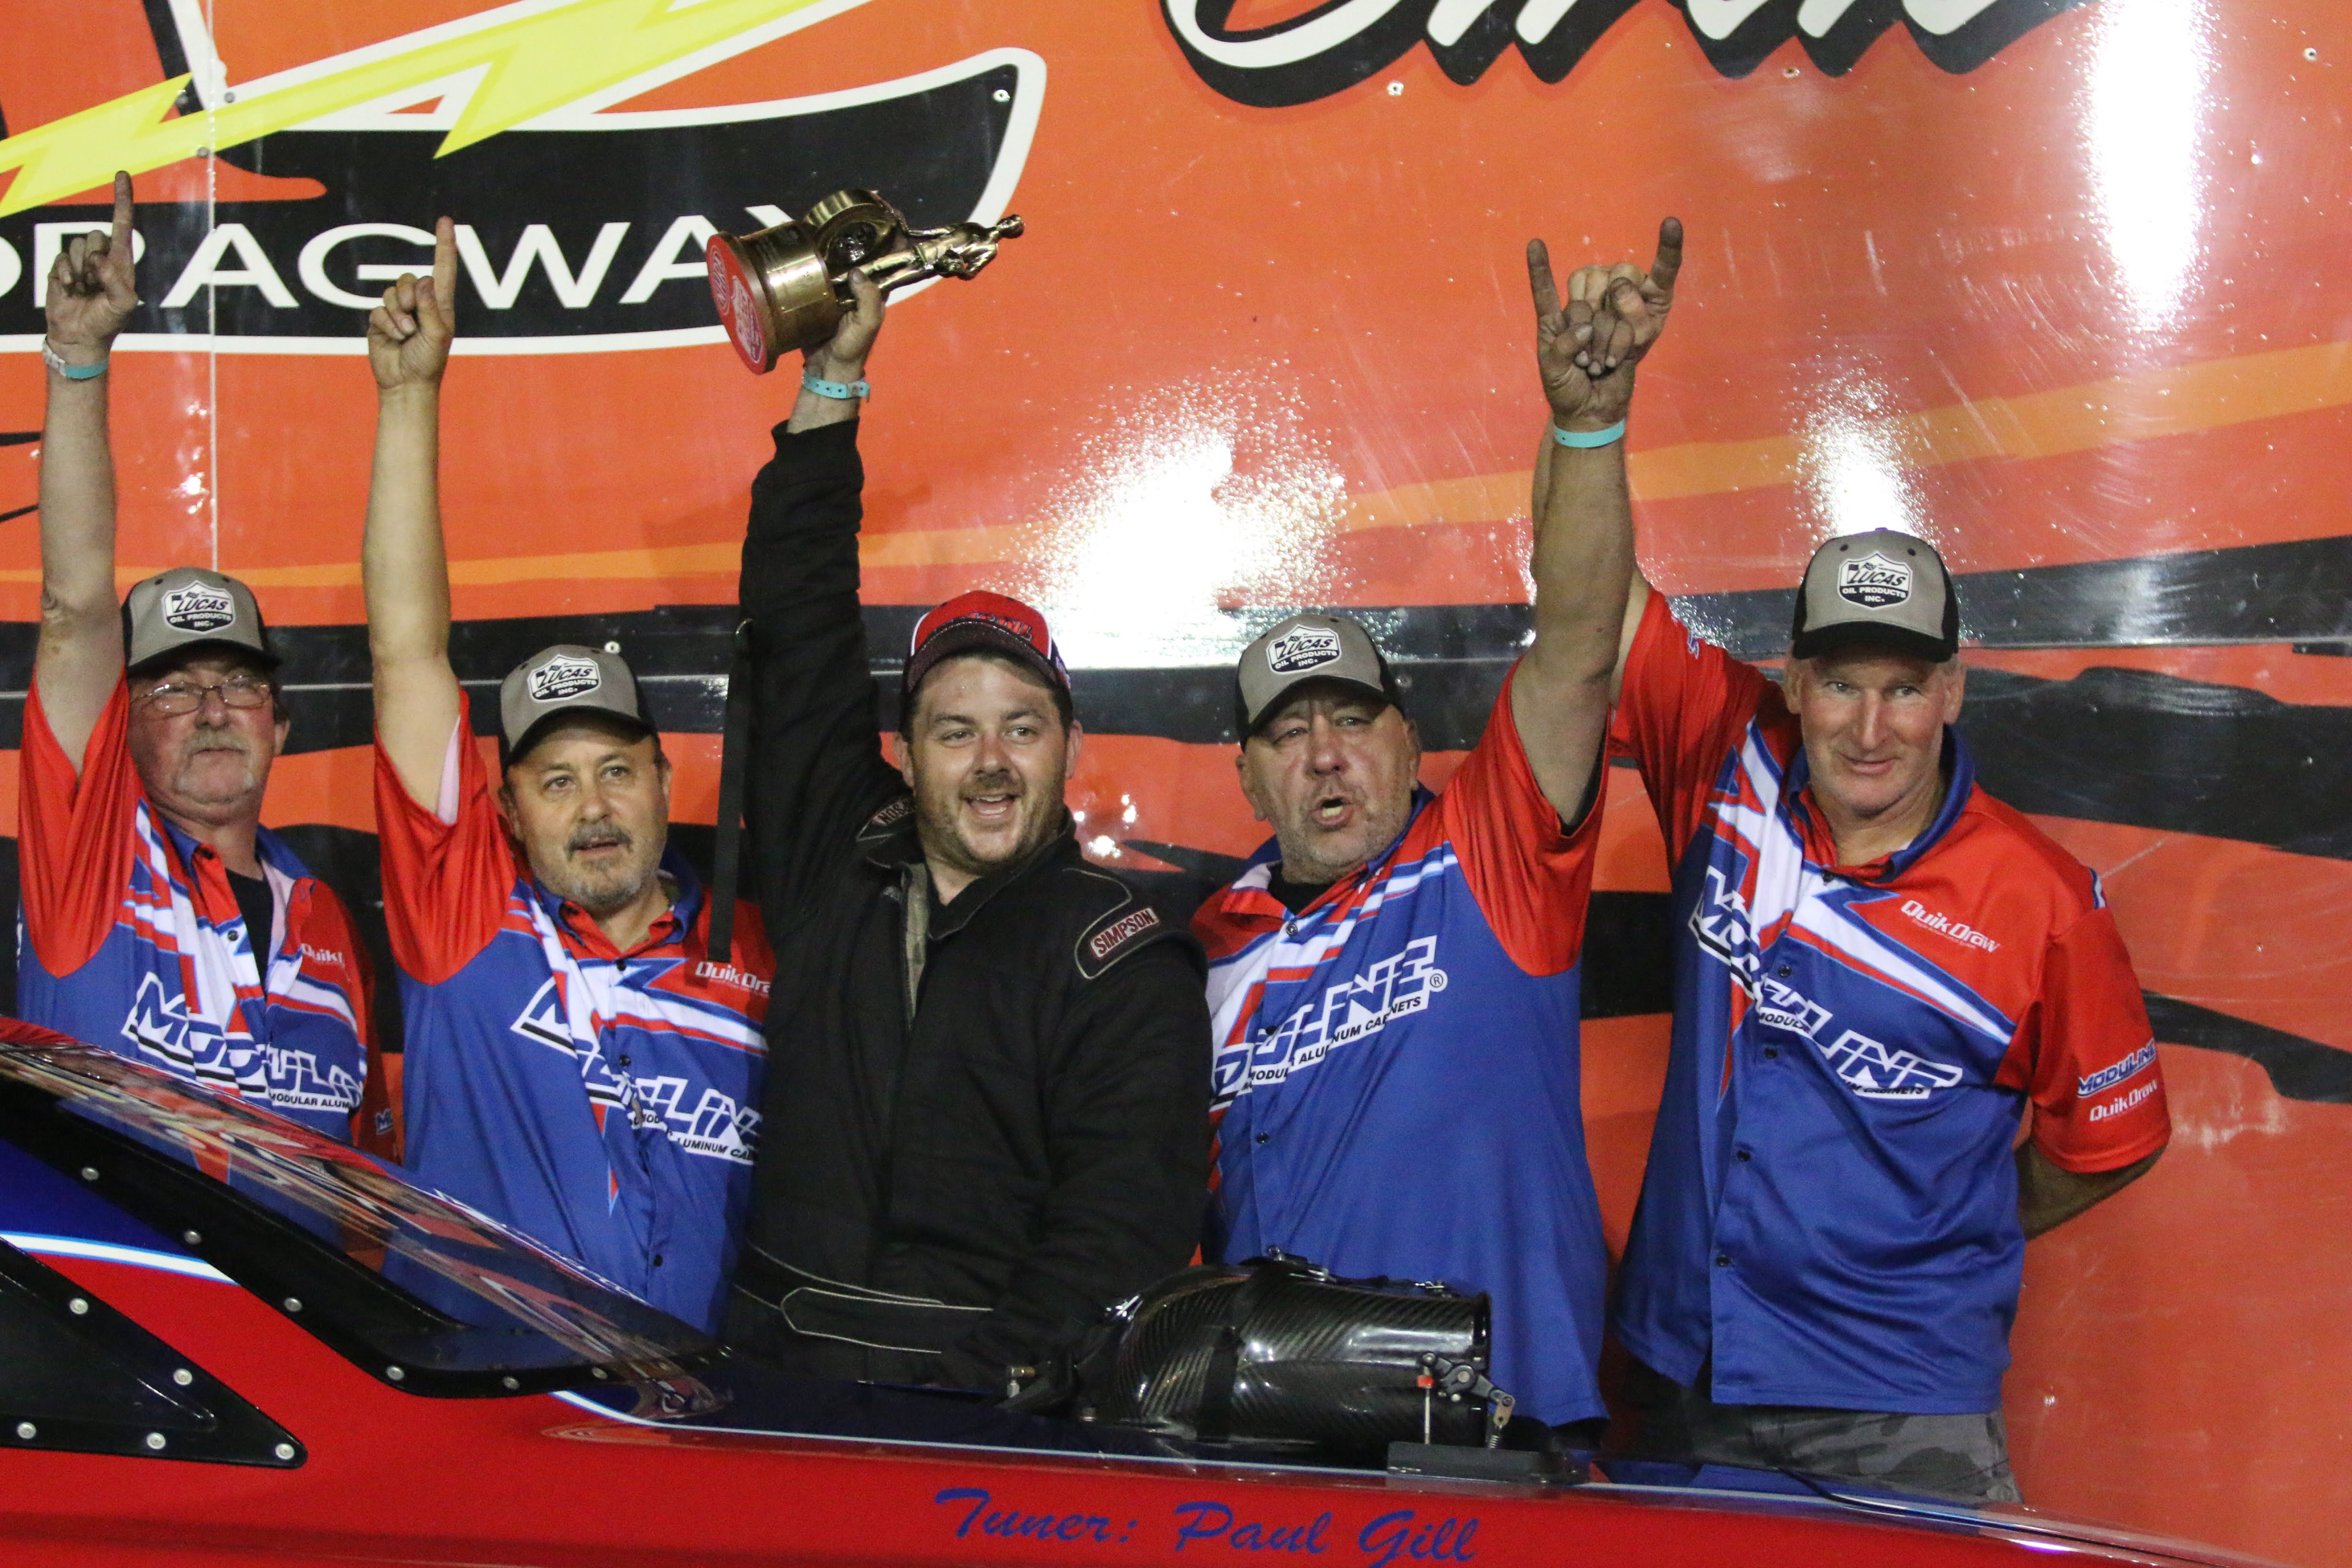 Top Alcohol Funny Car driver Mathew Gill after winning the Wally at the 2019 Atco Divisional